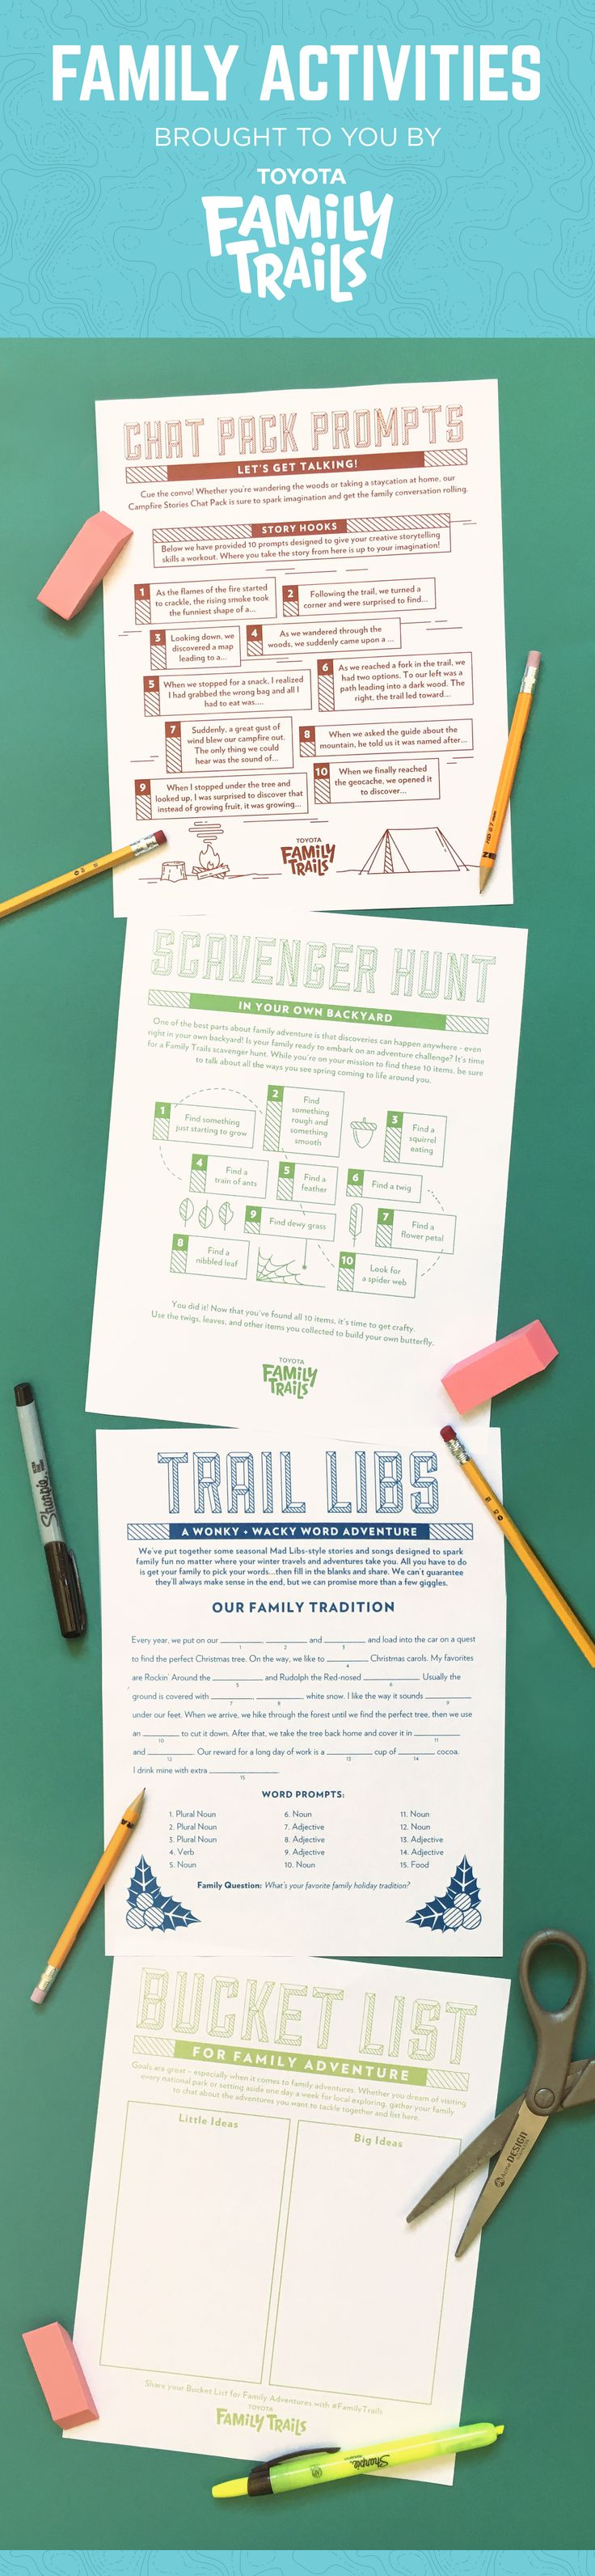 Holiday fun for the whole family! Free, kid-friendly activities brought to you by Toyota Family Trails. Click through to download and print! // #FamilyTrails